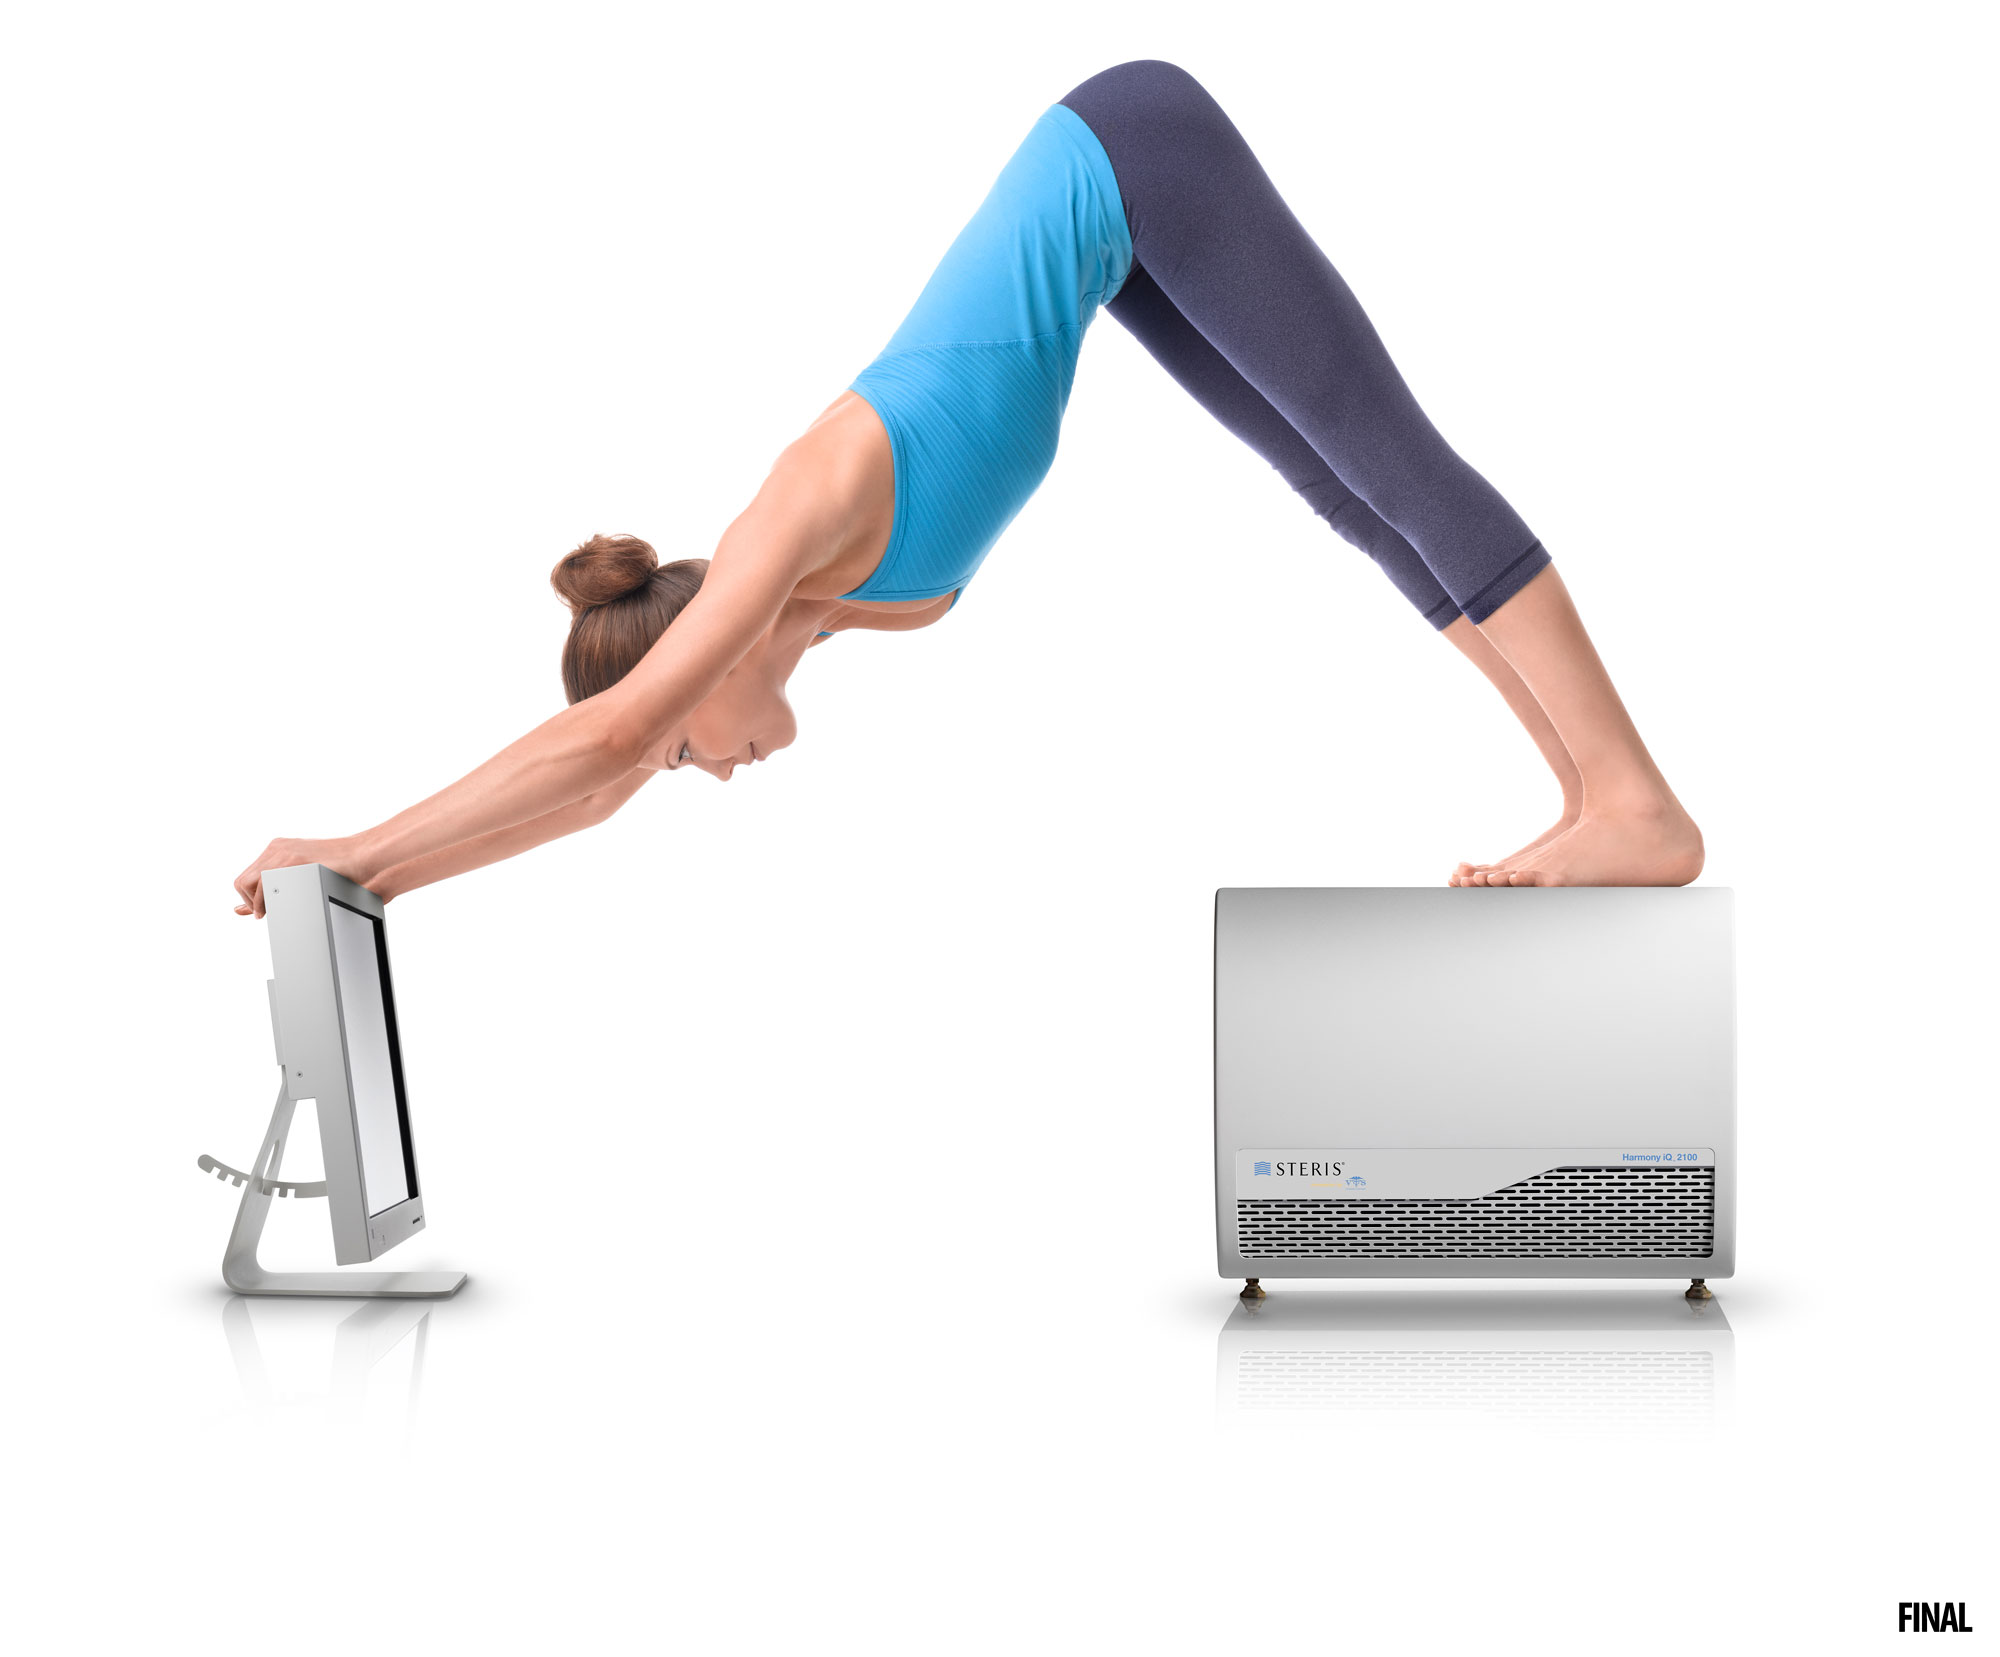 professional composite image of woman doing yoga on steris products